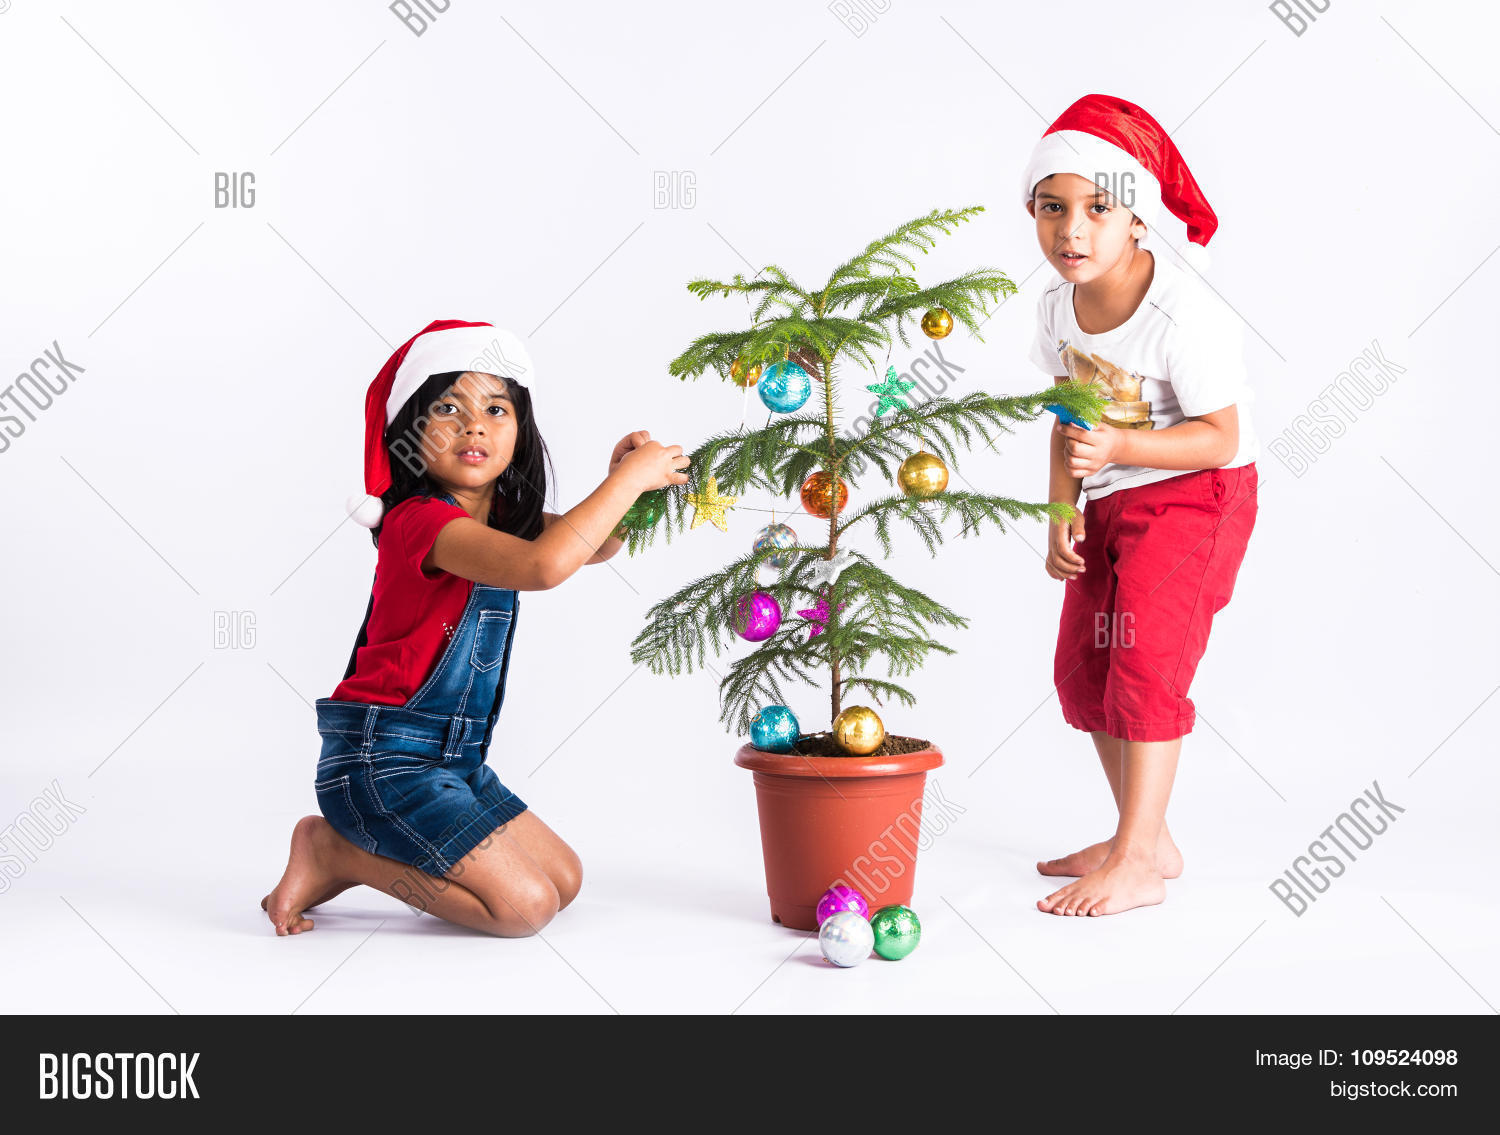 Indian Little Boy Image & Photo (Free Trial) | Bigstock